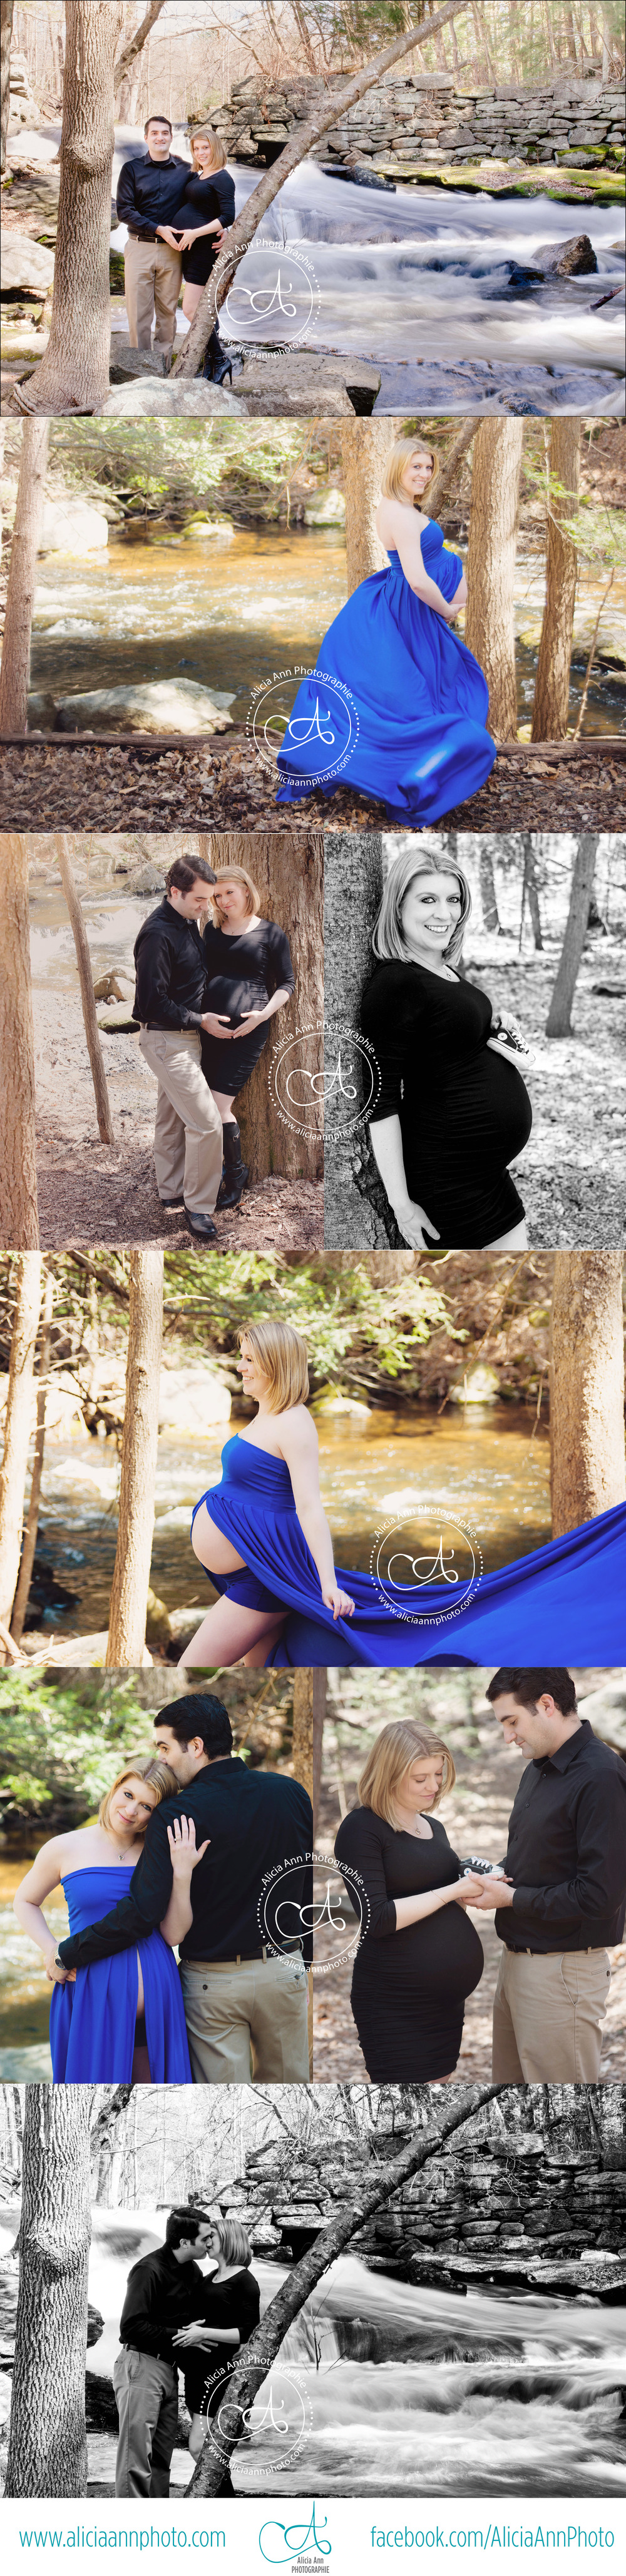 rhode_island_maternity_photography